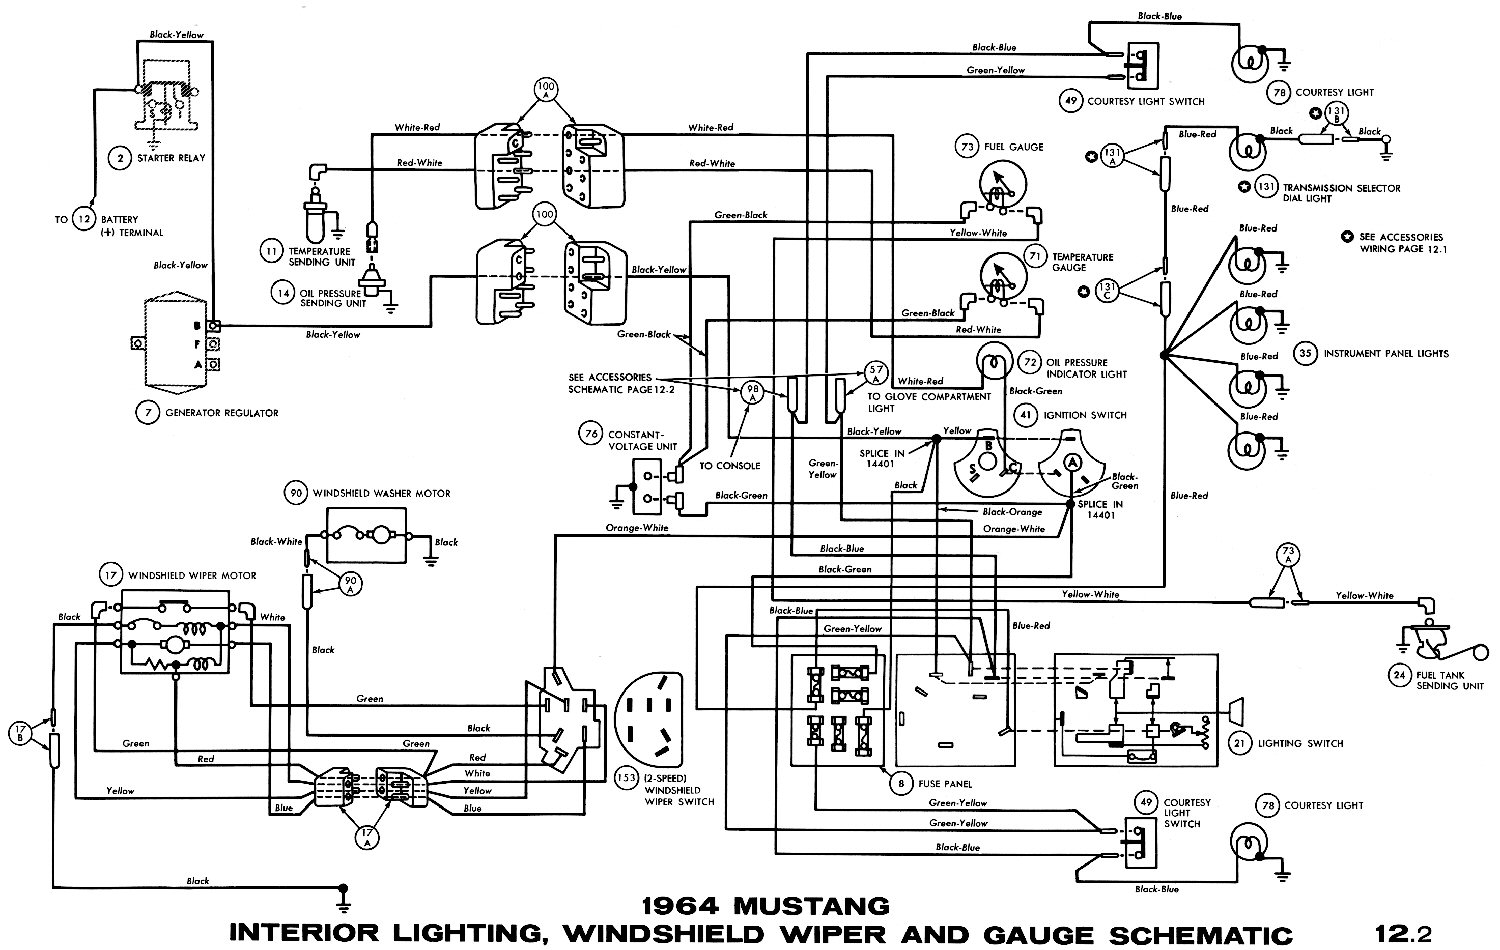 1964 mustang wiring diagrams average joe restoration gauges pictorial or schematic oil pressure